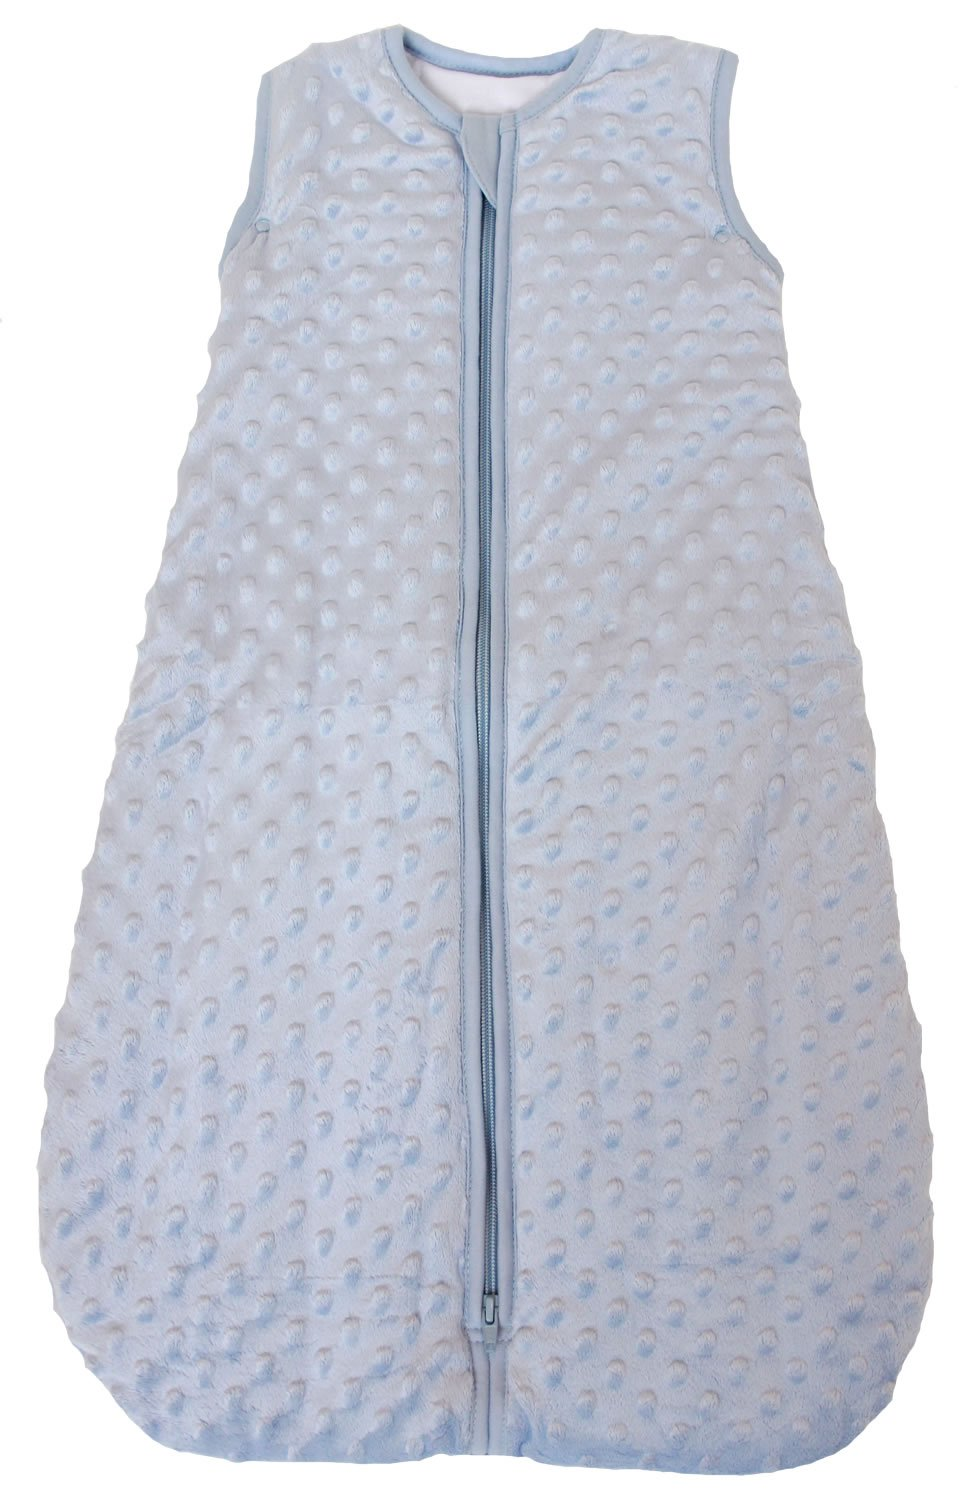 """3 . Baby Sleeping Bag""""Minky Dot"""" Blue, Quilted Winter"""